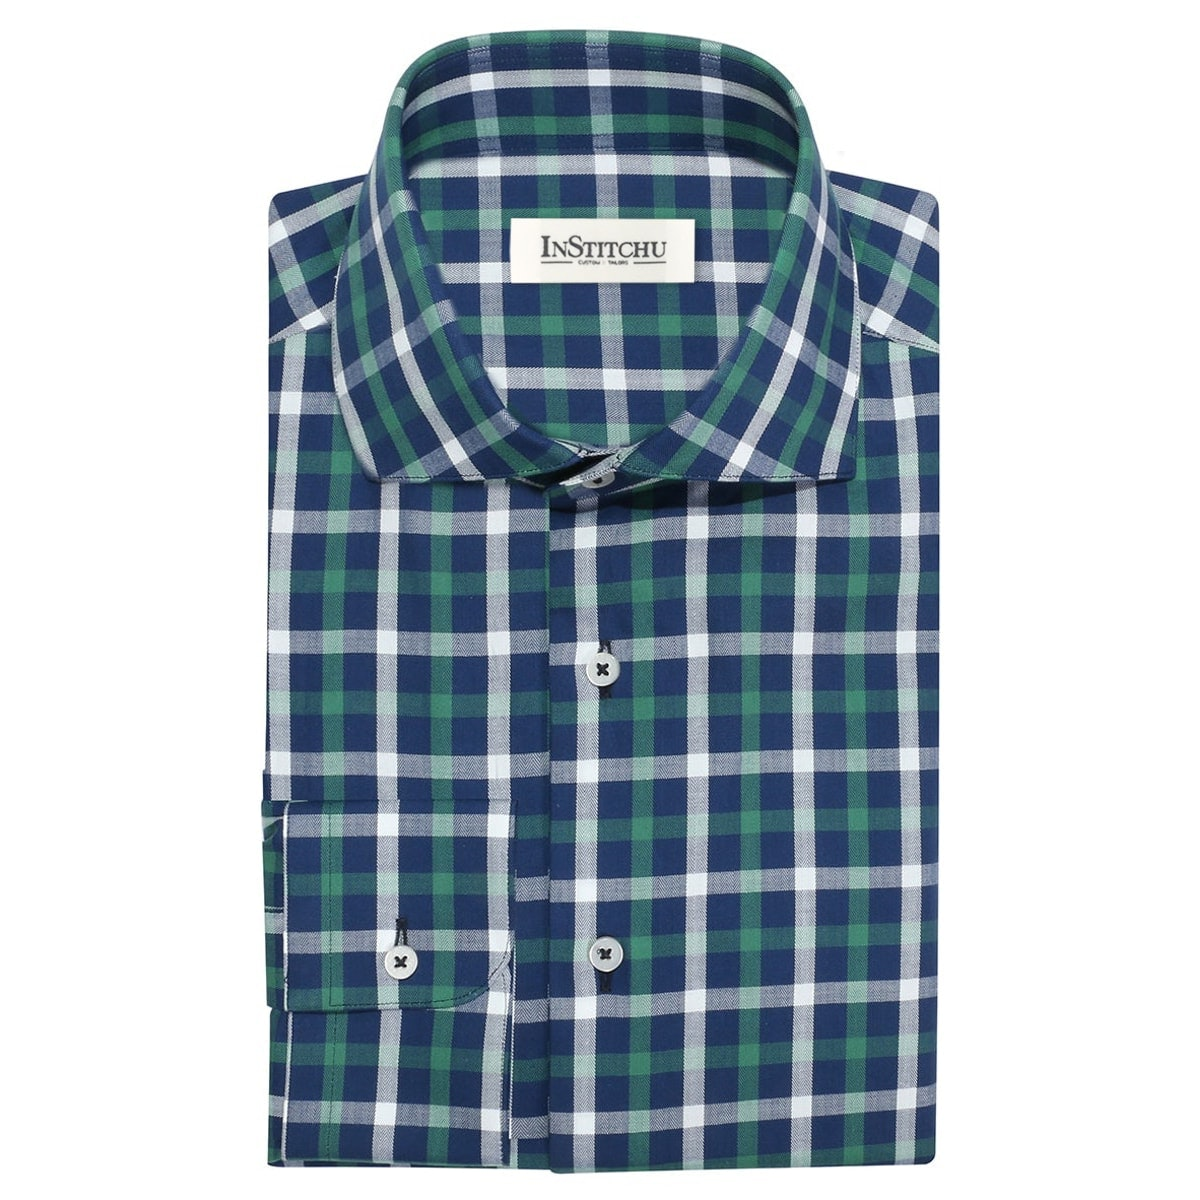 InStitchu Collection The Manzanilla Green Check Shirt